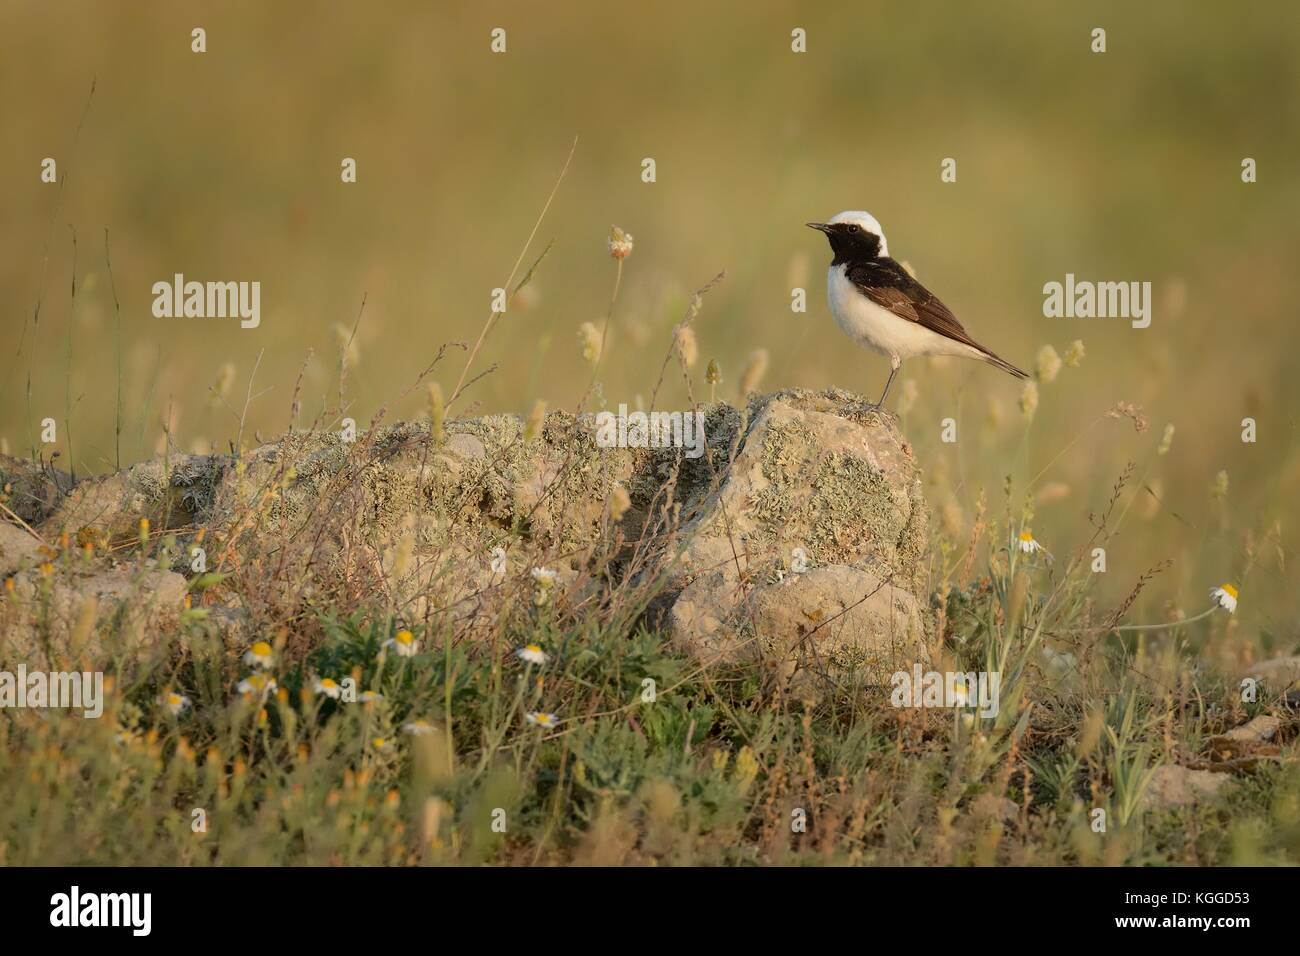 Pied Wheatear - Oenanthe pleschanka in Romania, mountain, sitting on the rock - Stock Image